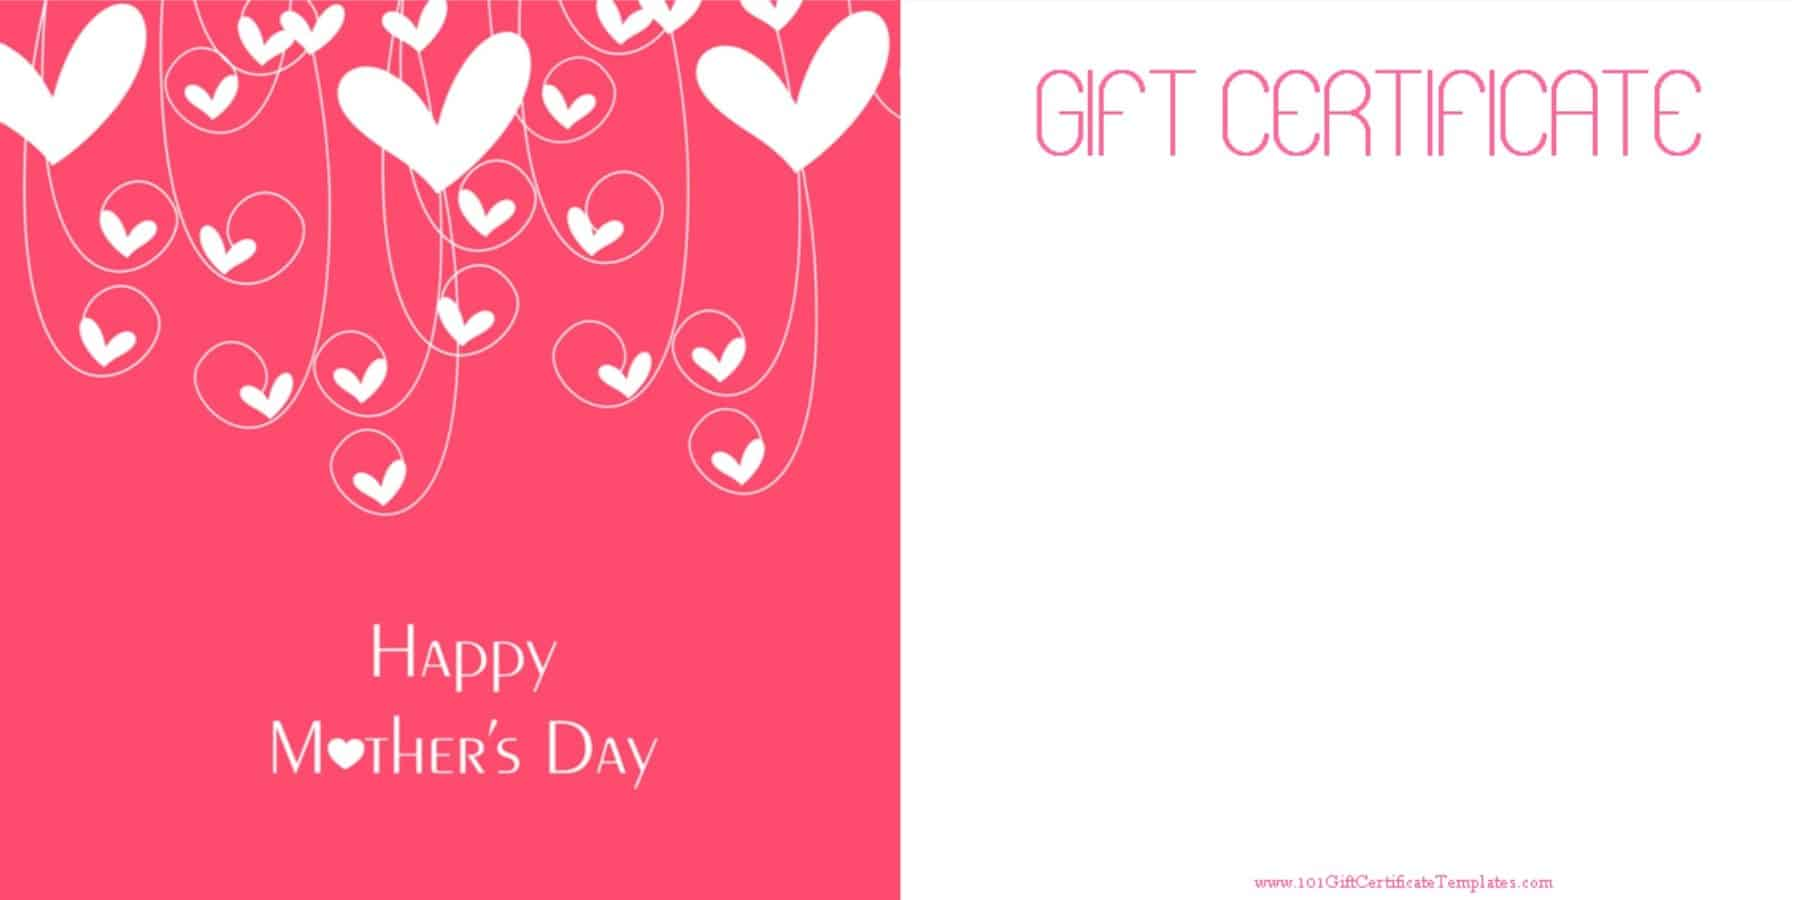 Mothers day gift certificate templates yadclub Choice Image